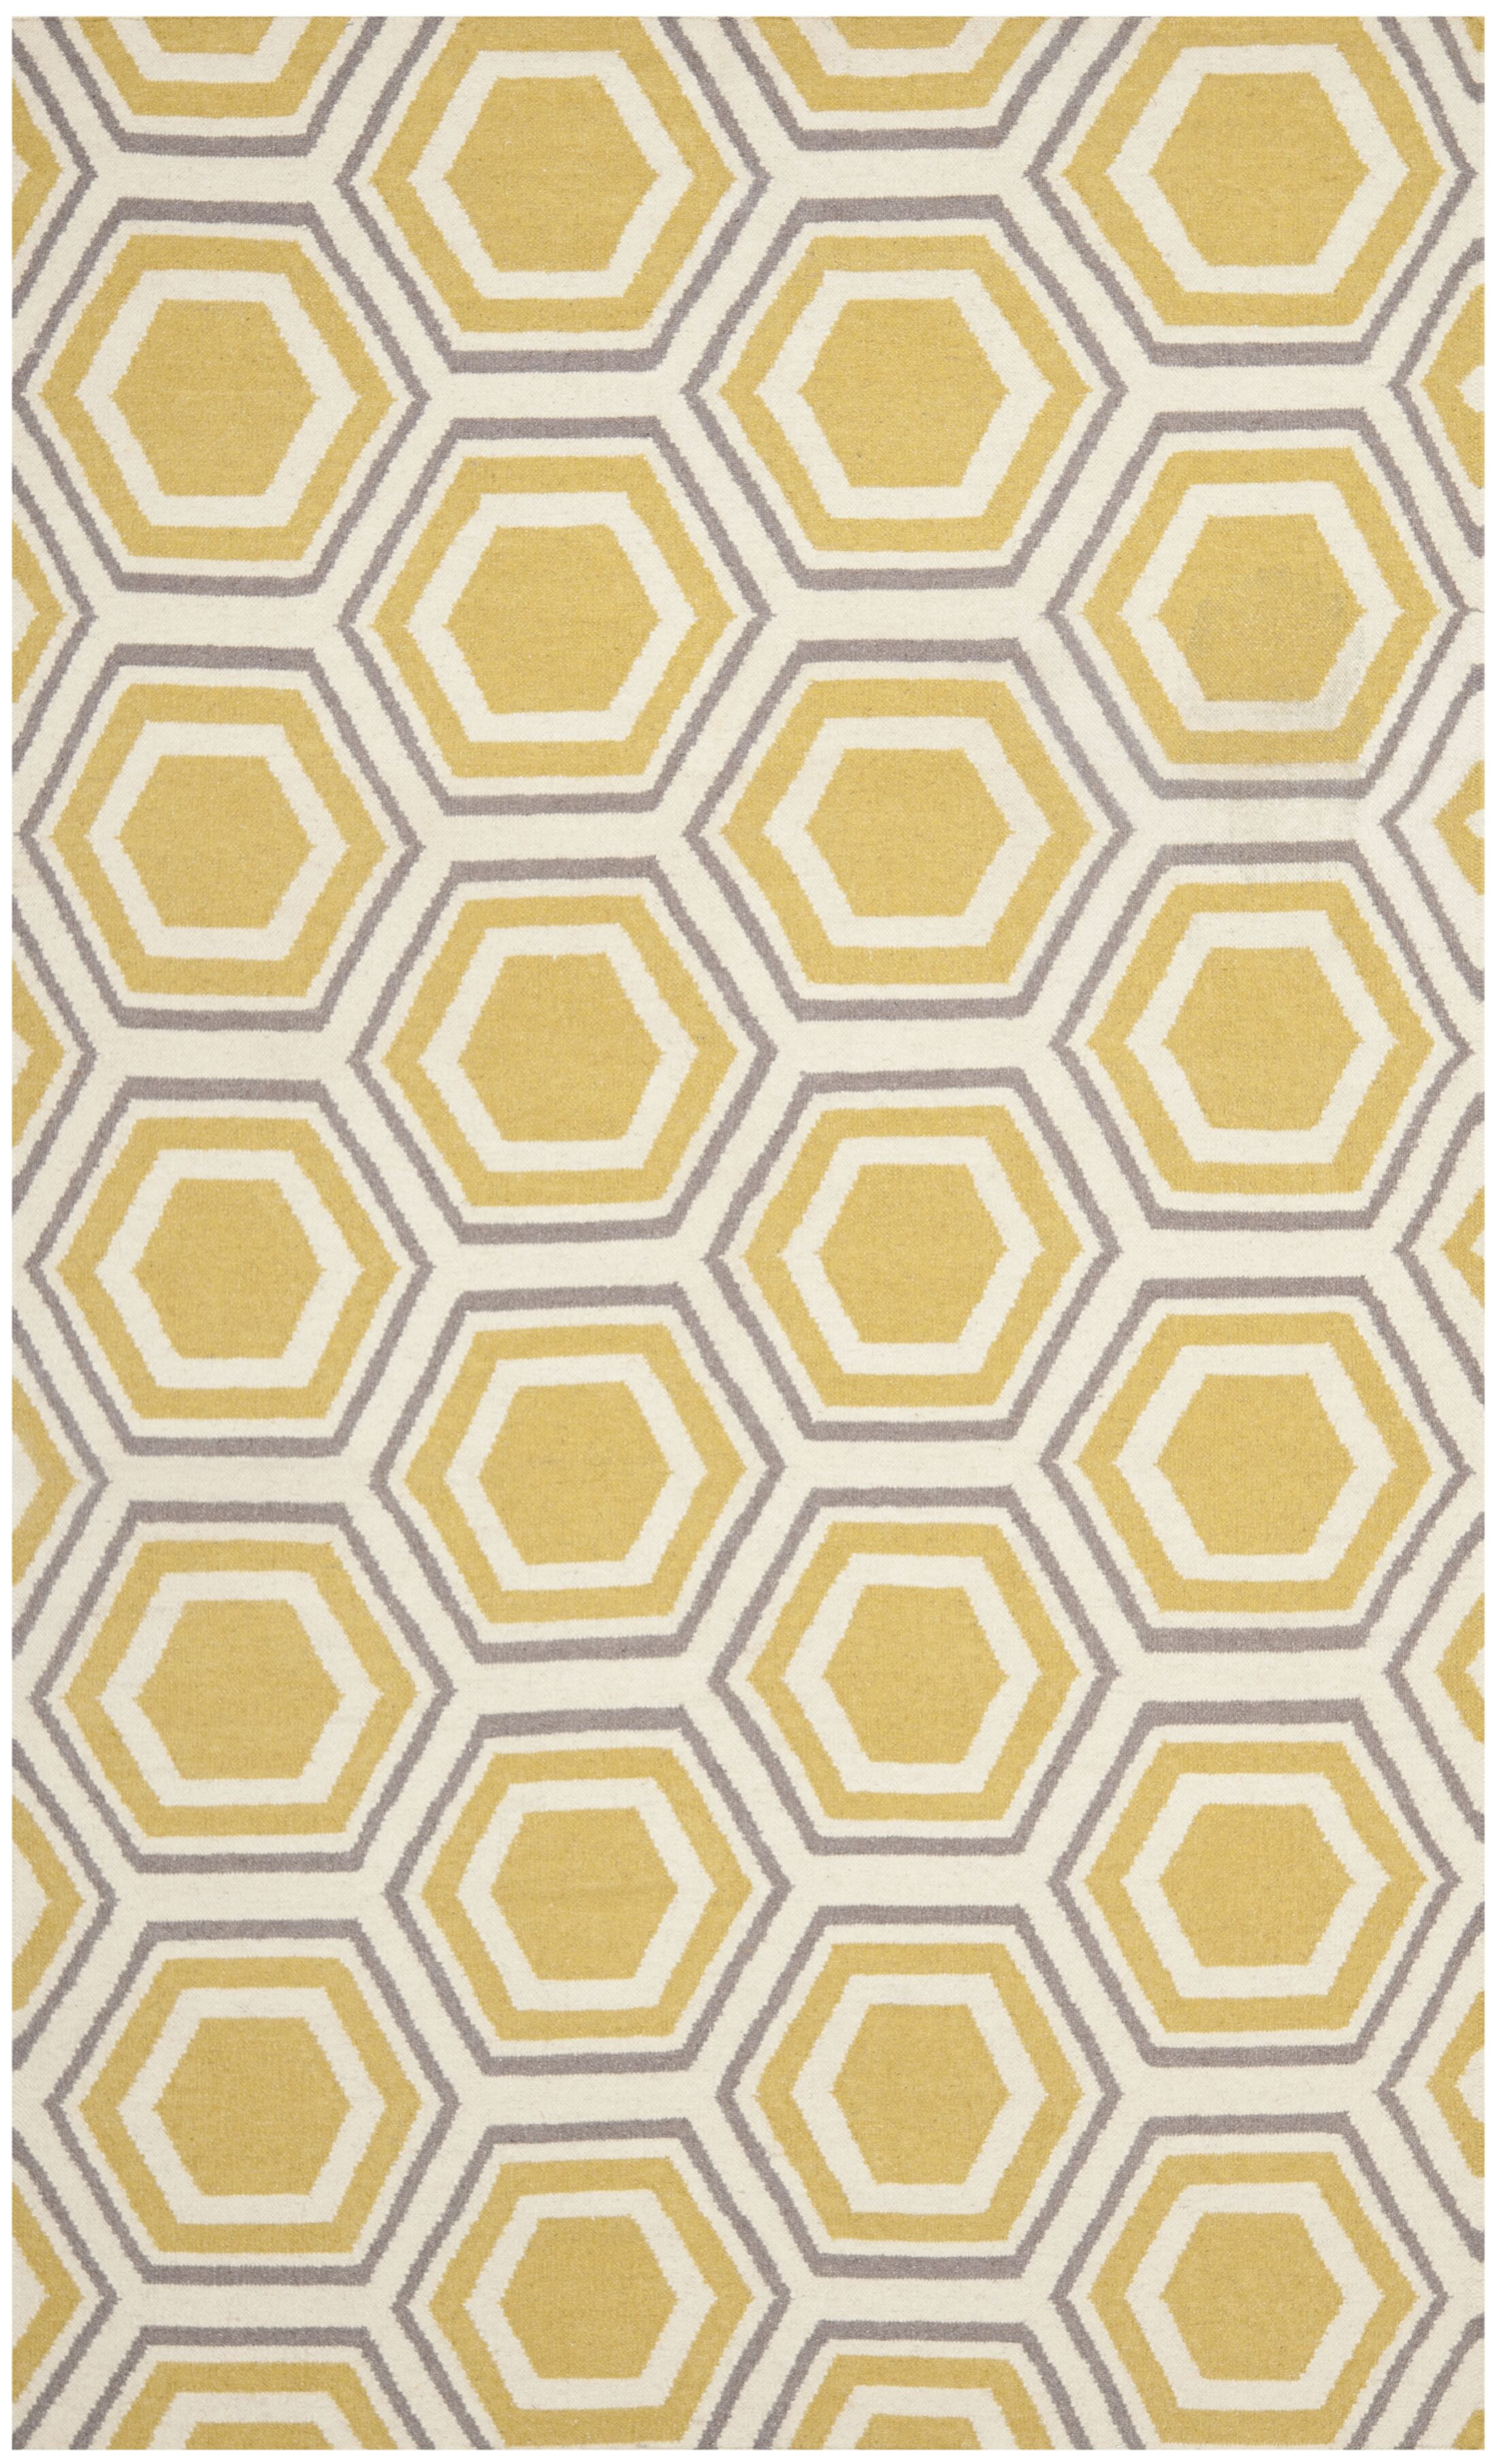 Cassiopeia Hand Woven Ivory/Yellow Area Rug Rug Size: Rectangle 9' x 12'